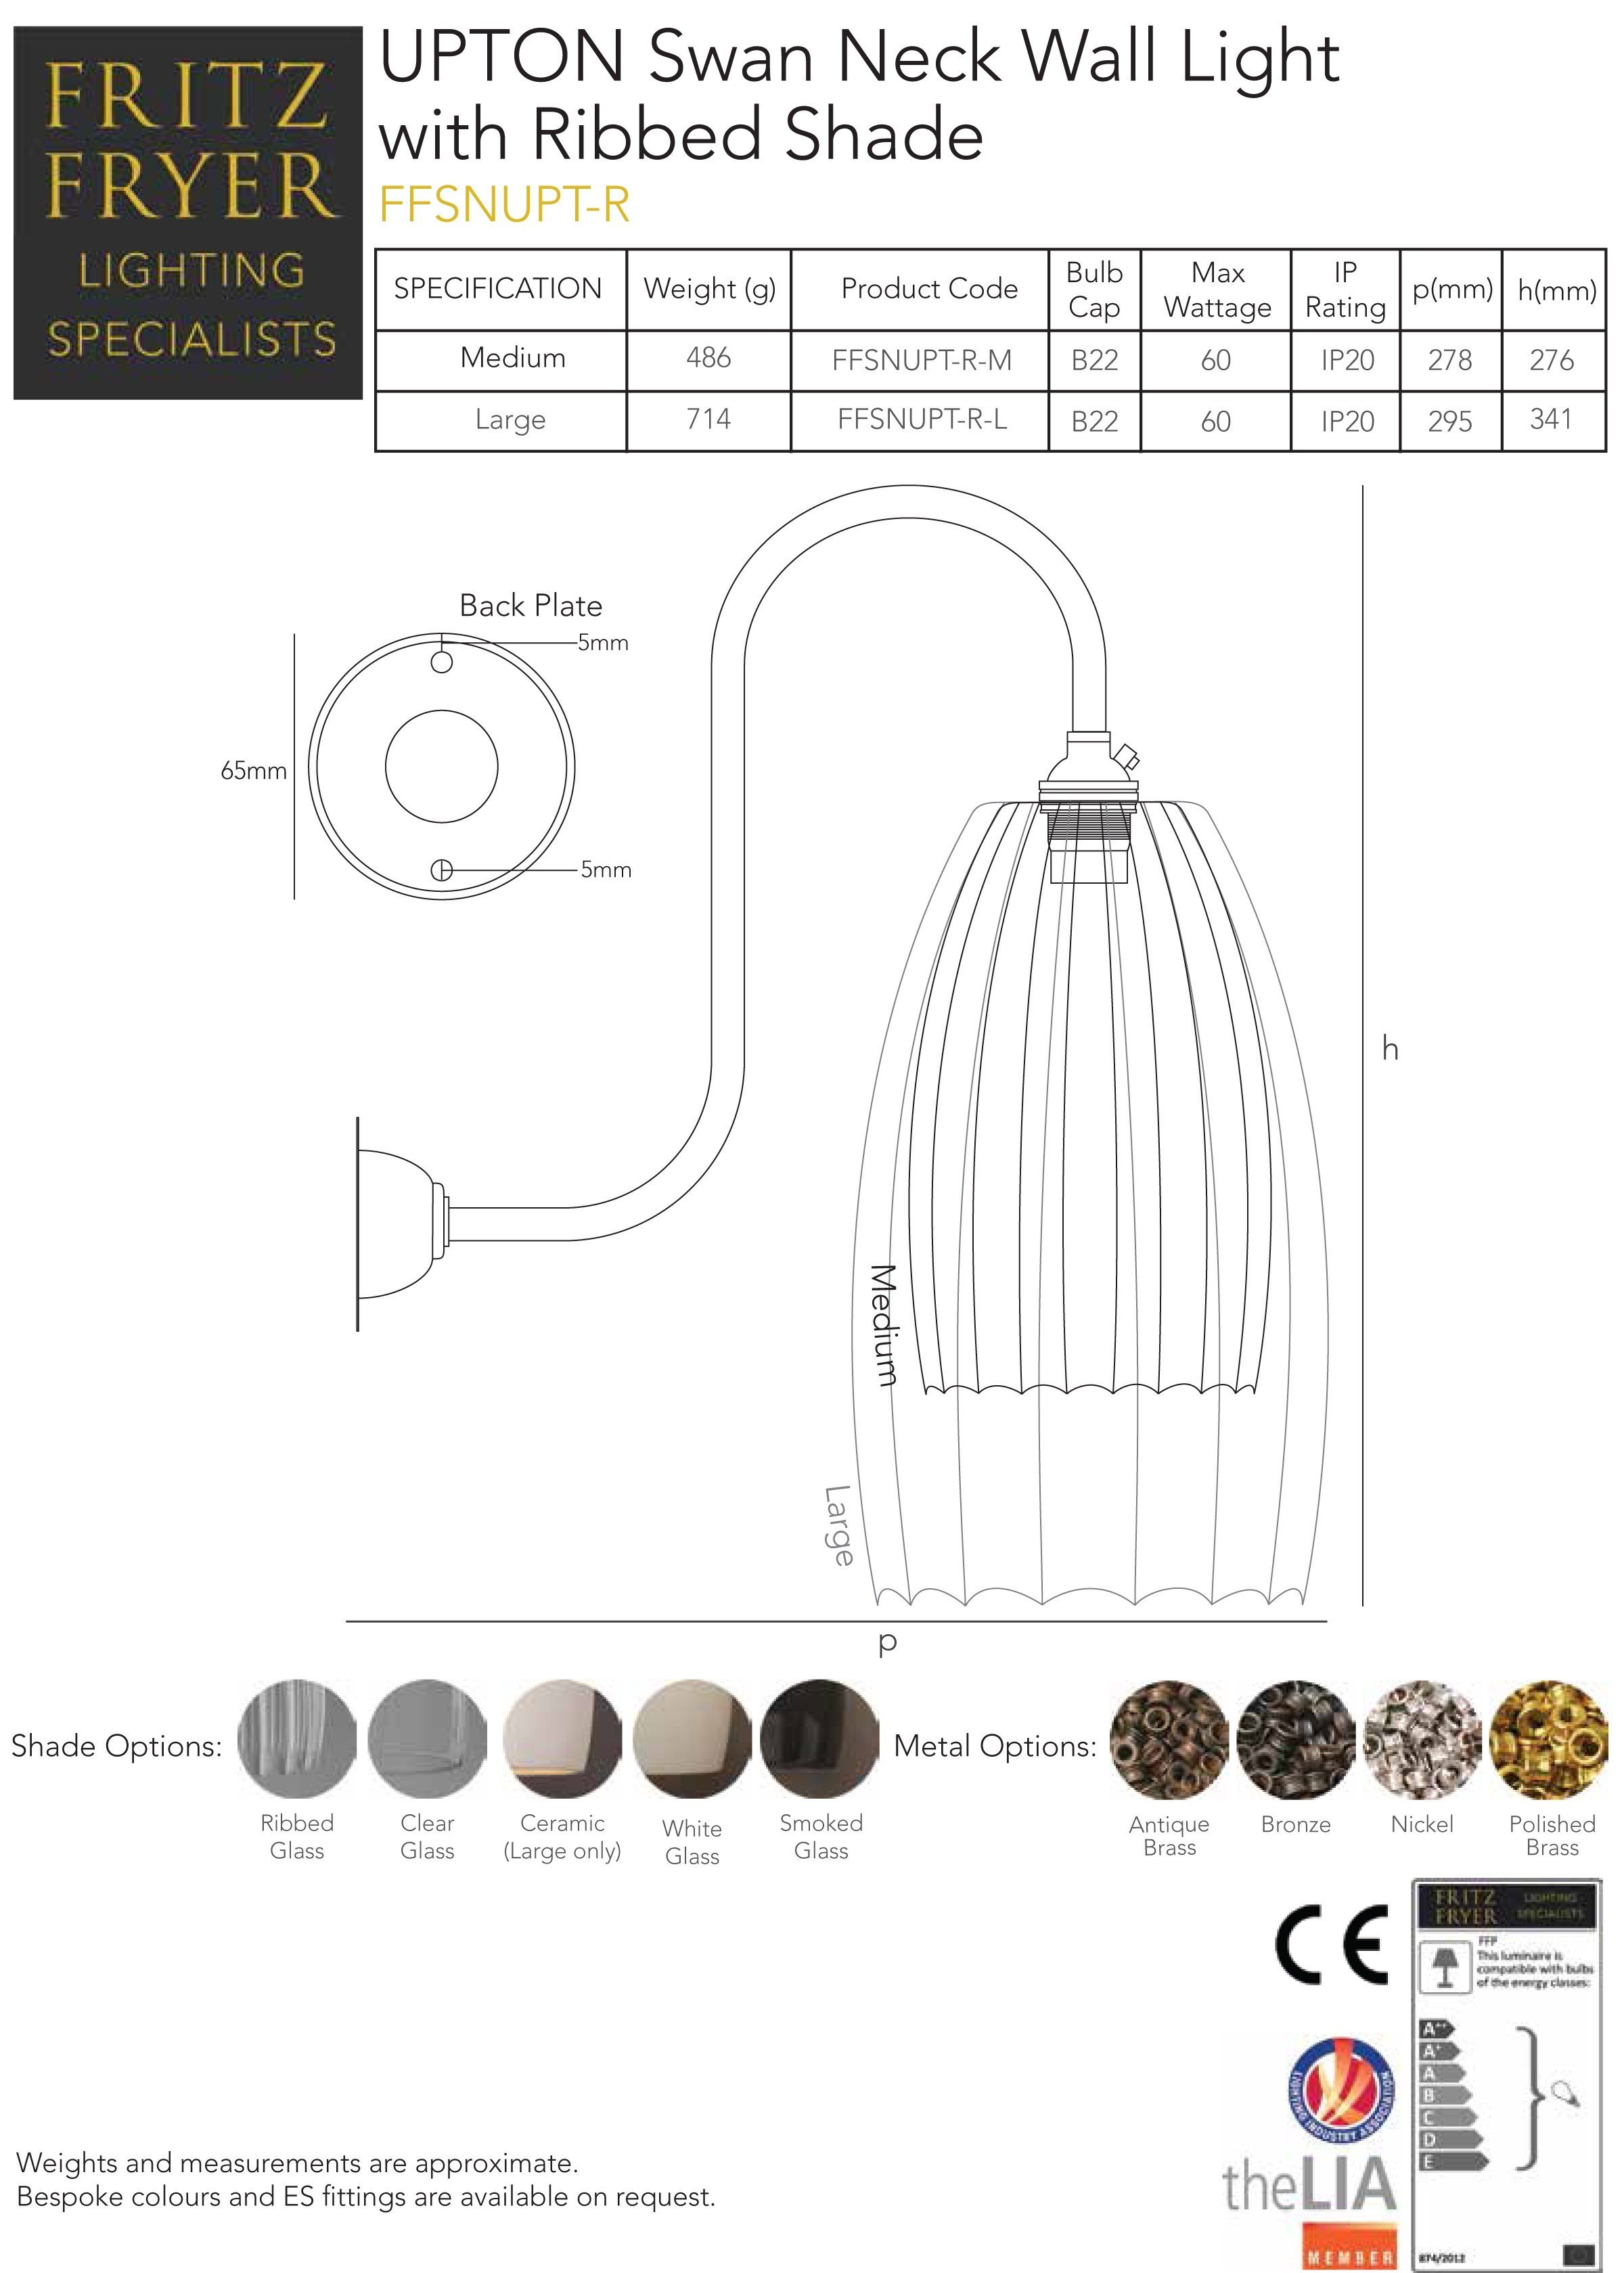 designer-lighting-upton-swan-neck-wall-light-ribbed-technical-data-sheet-fritz-fryer